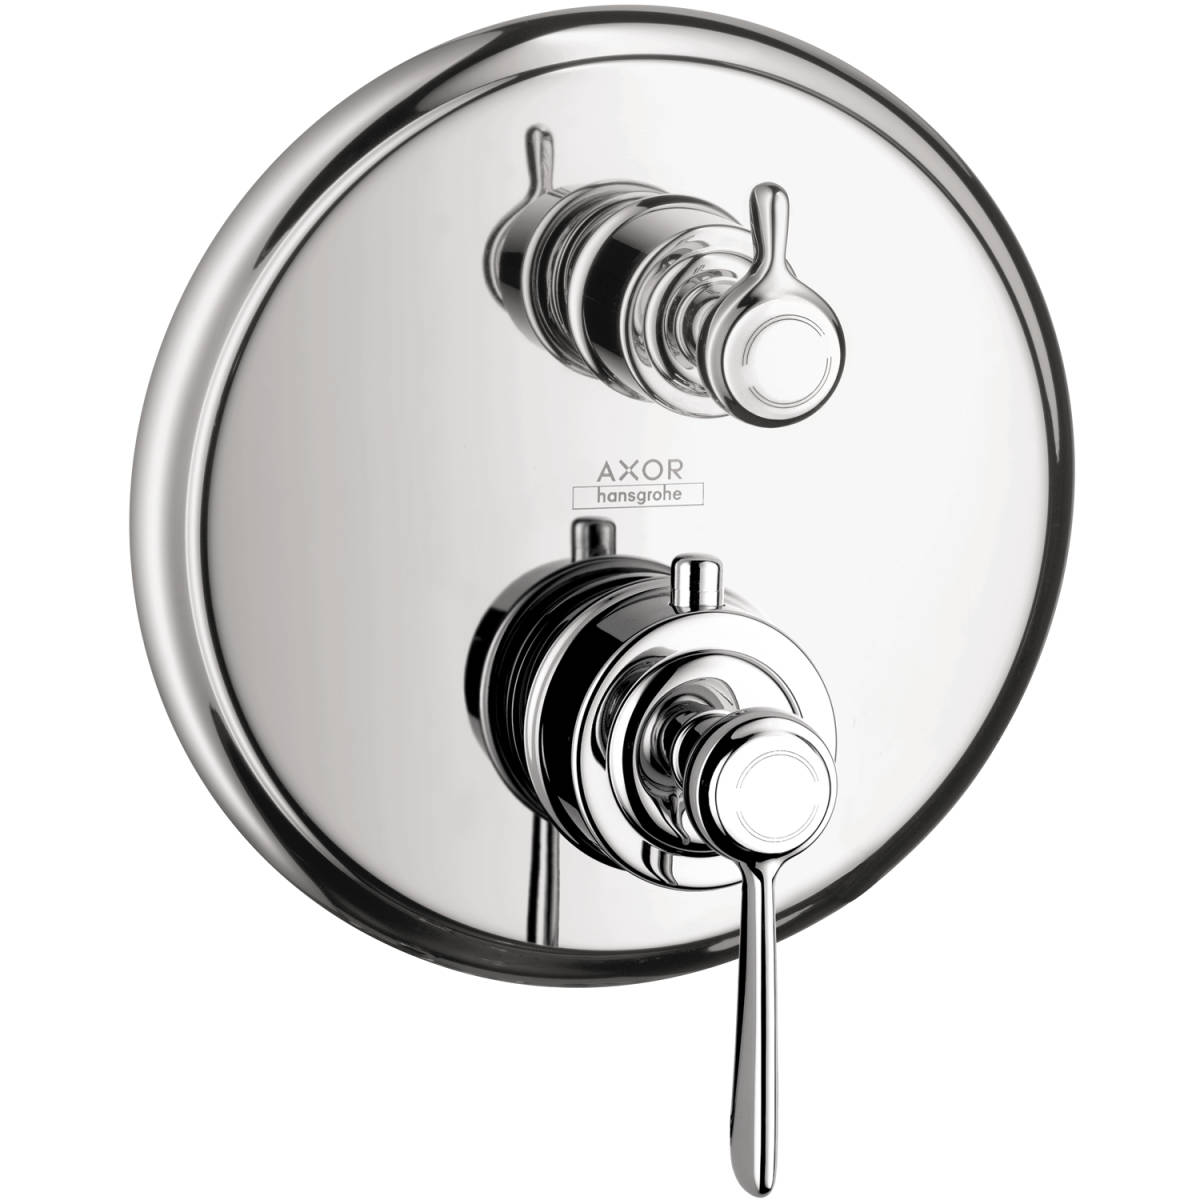 Thermostat for concealed installation with lever landle and shut-off/ diverter valve, Chrome, 16821001